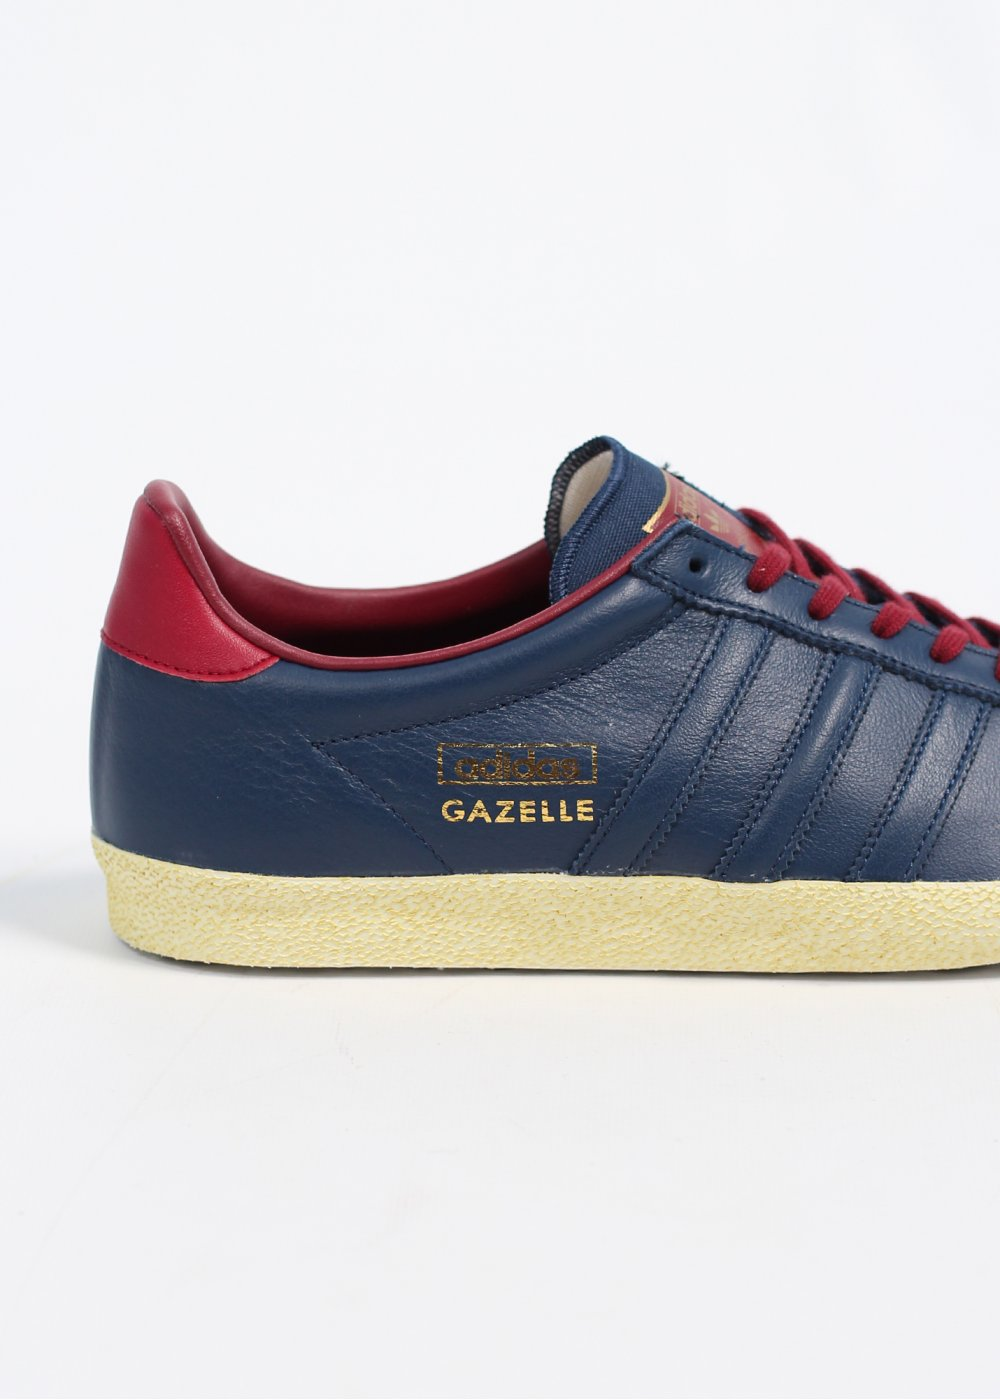 Adidas Originals Originals Top Ten Low Sneaker In Black: Adidas Originals Gazelle OG Leather Trainers